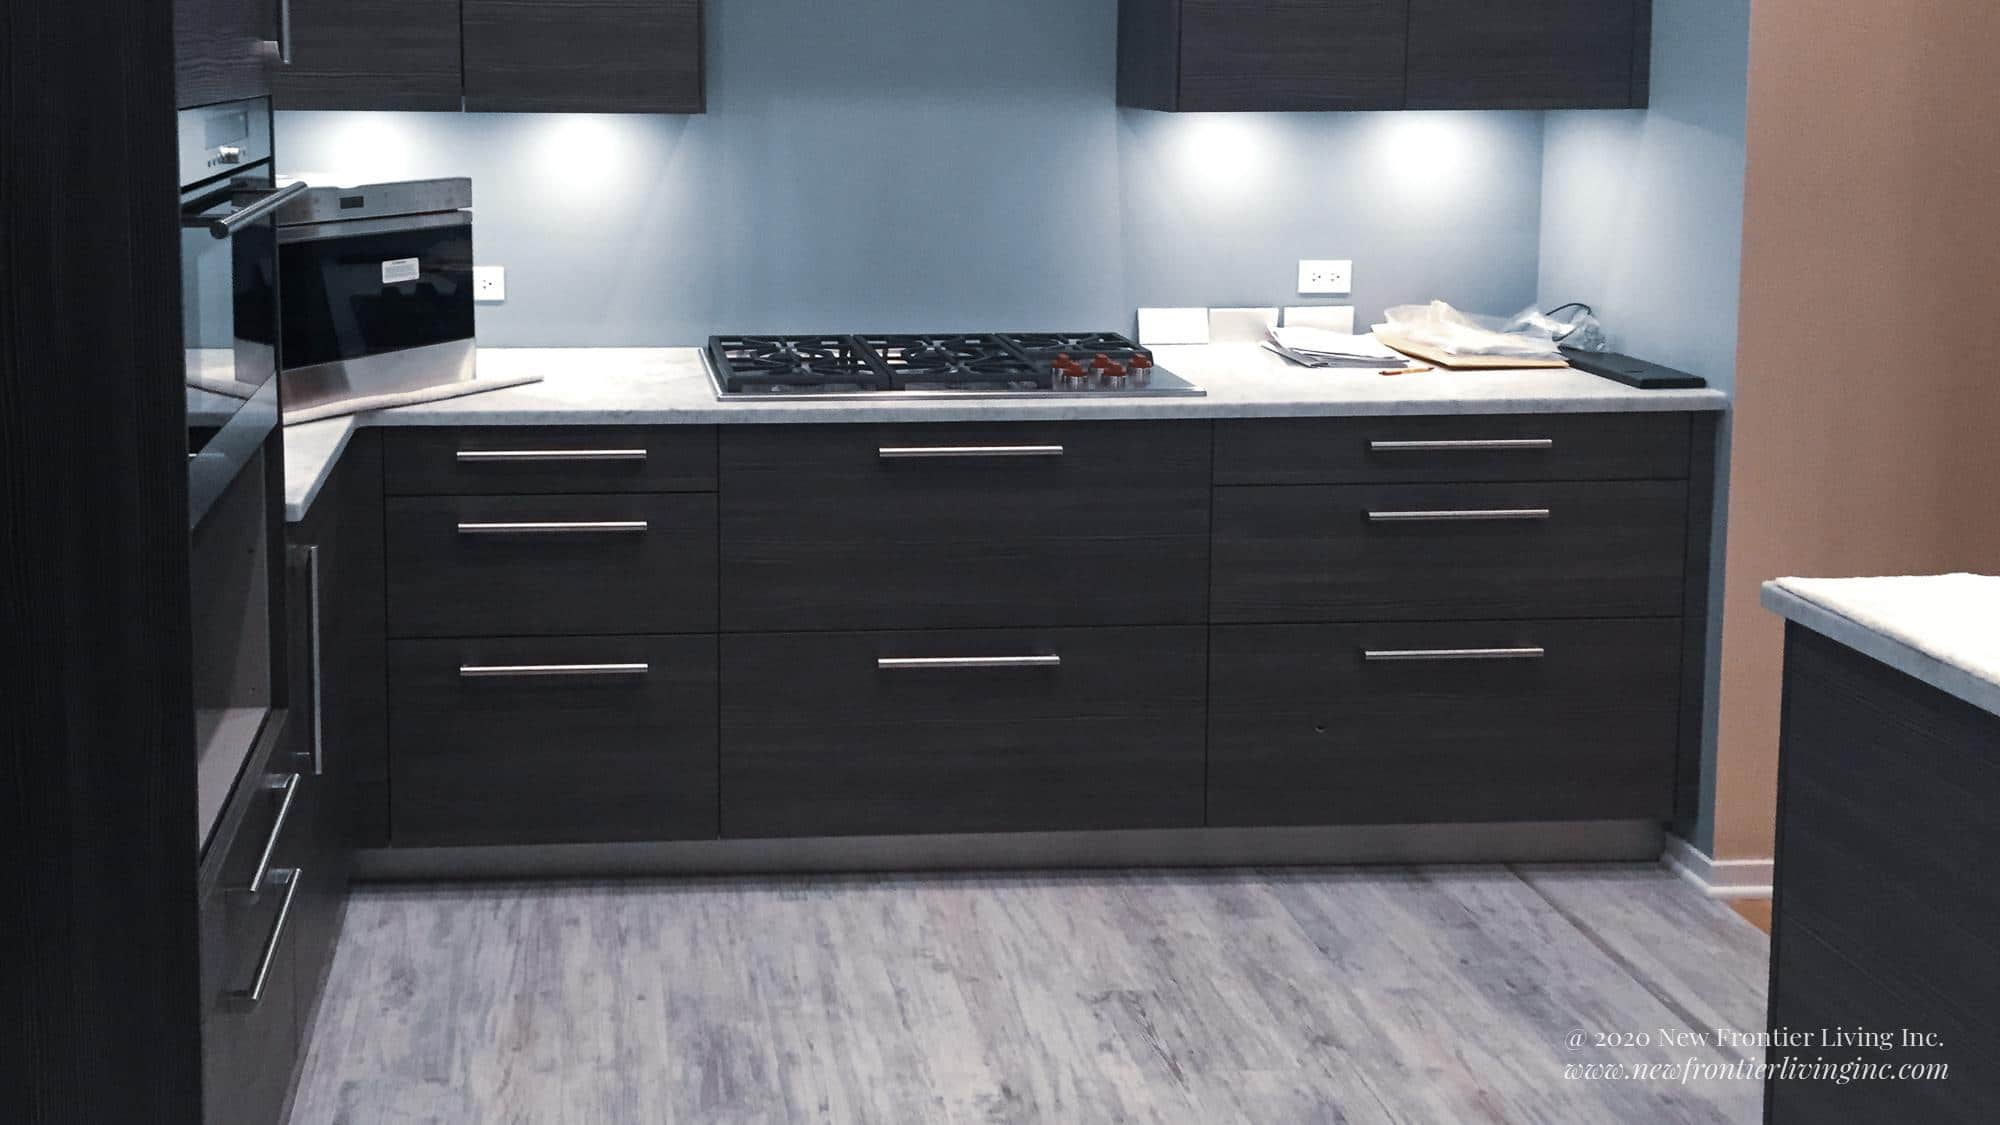 Black kitchen cabinetry and white countertop with range cooktop, microwave on the left